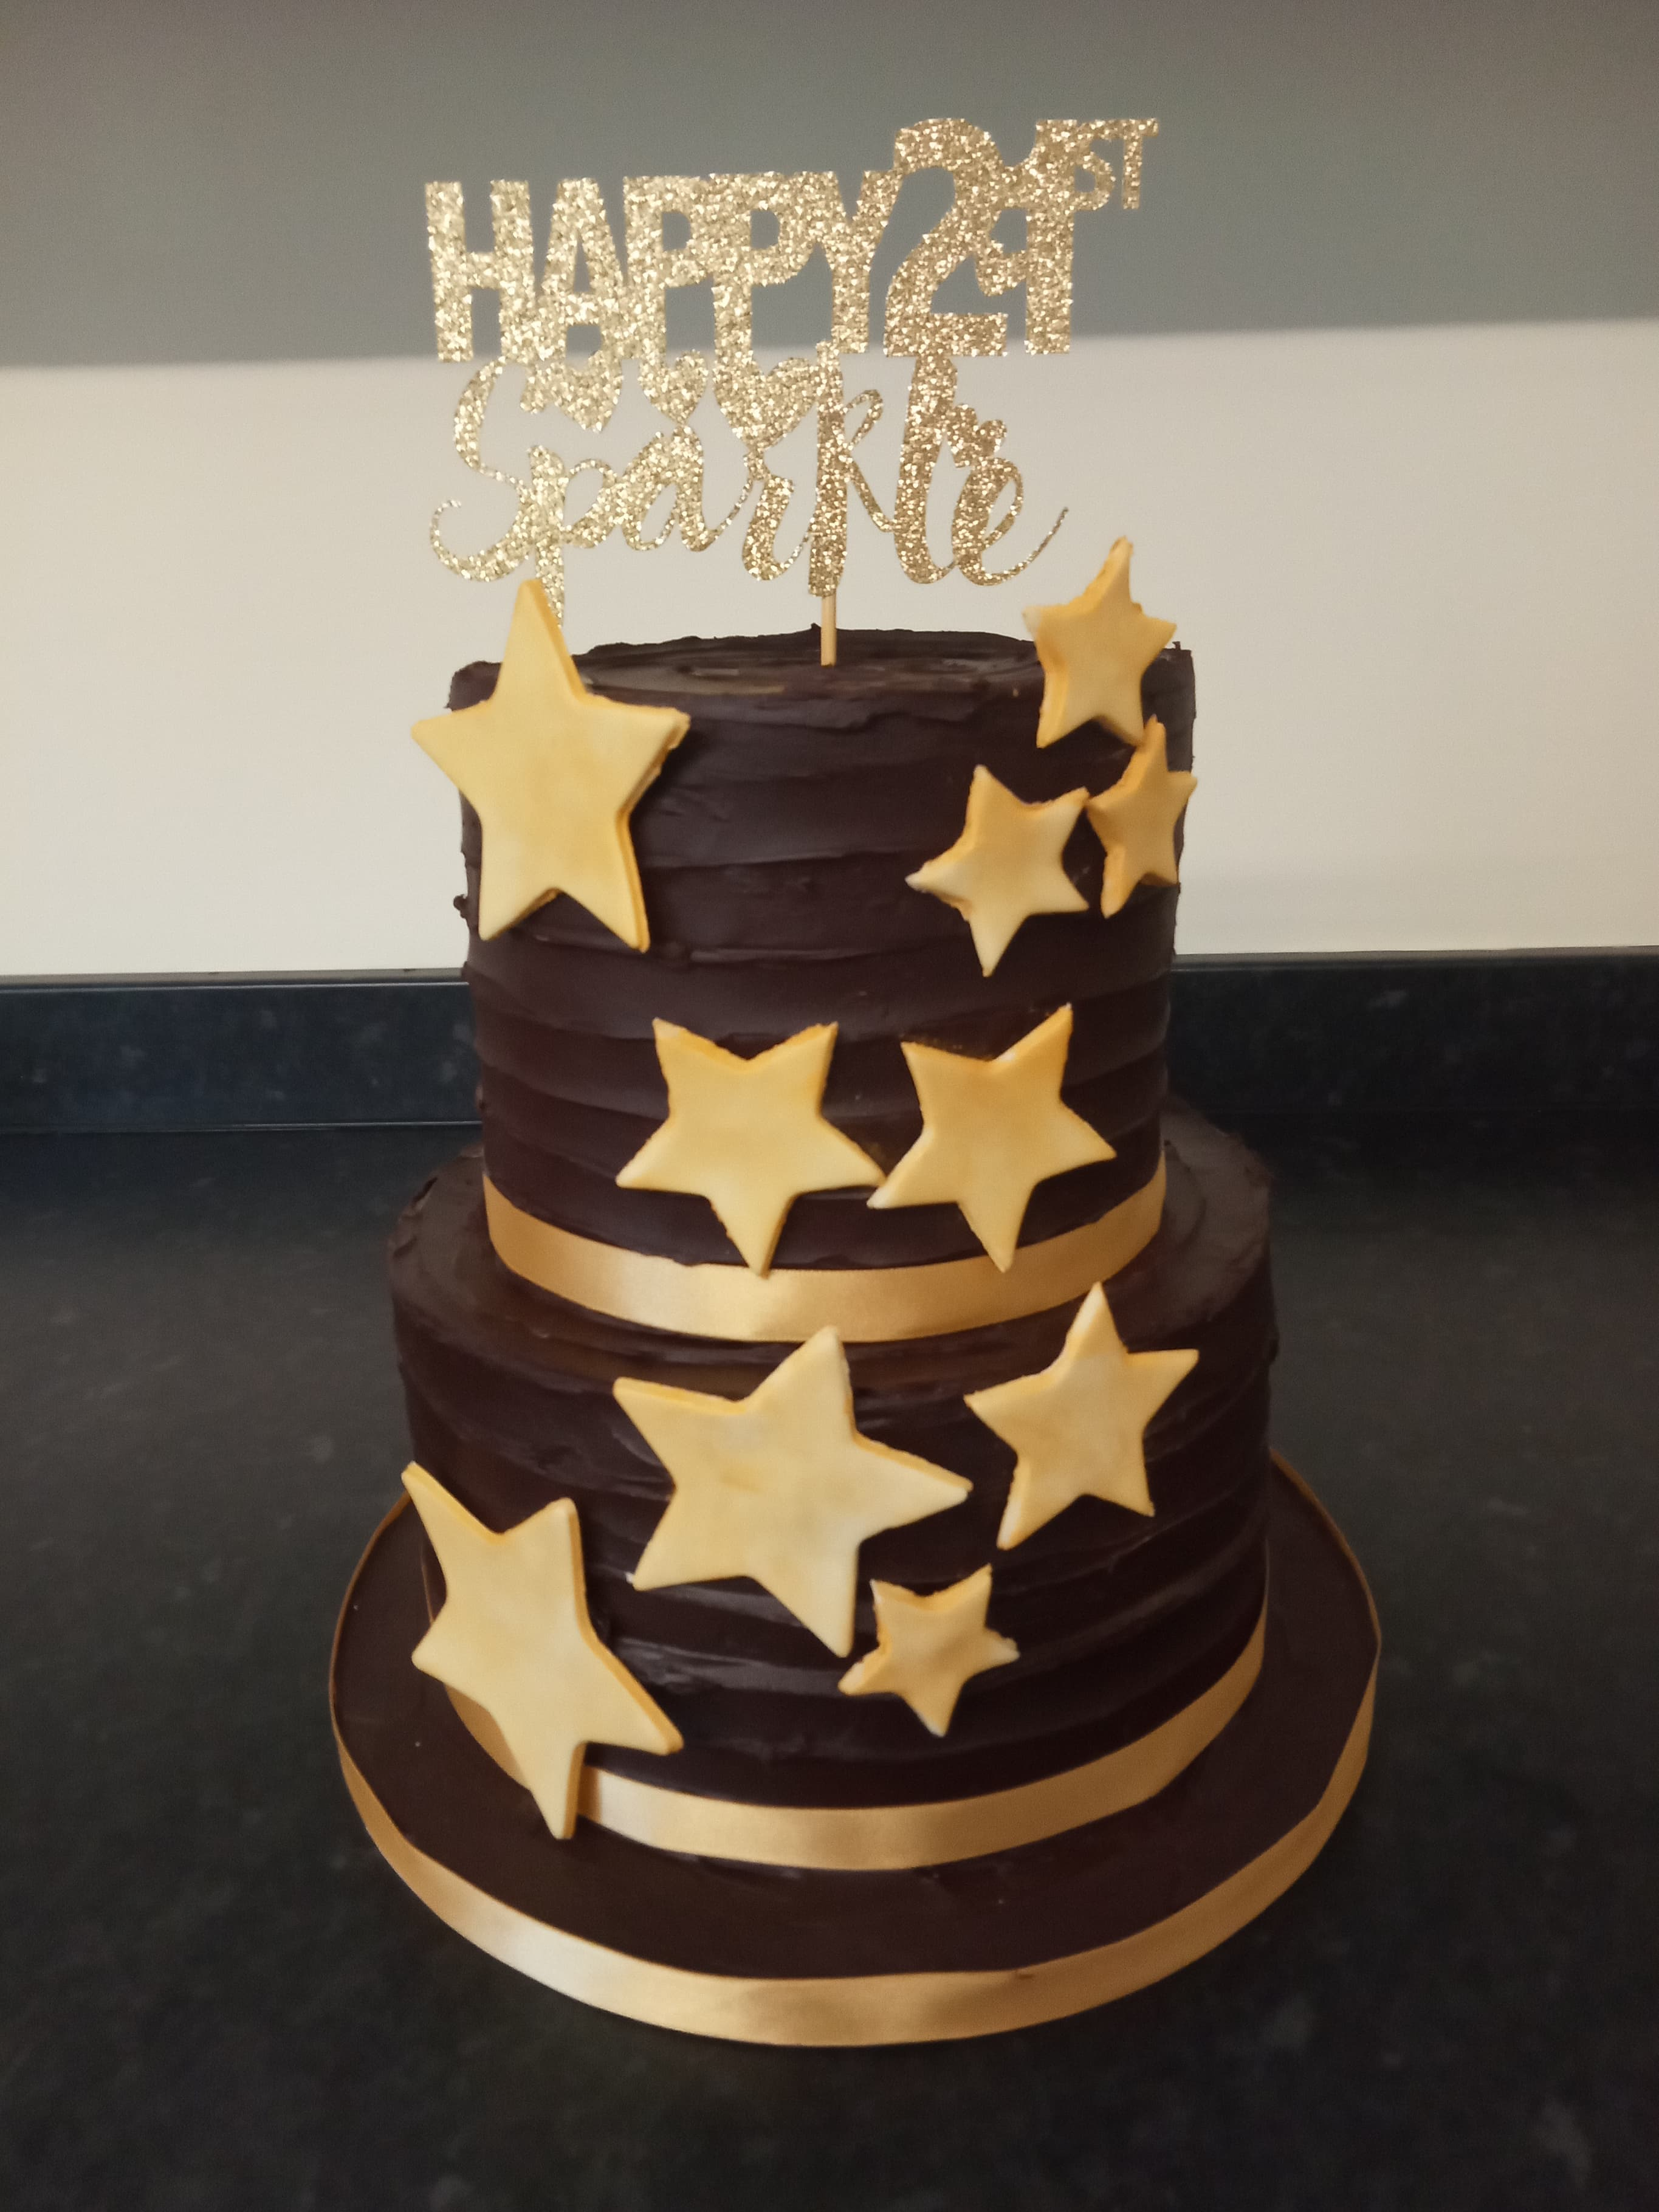 21st birthday two tier chocolate cake